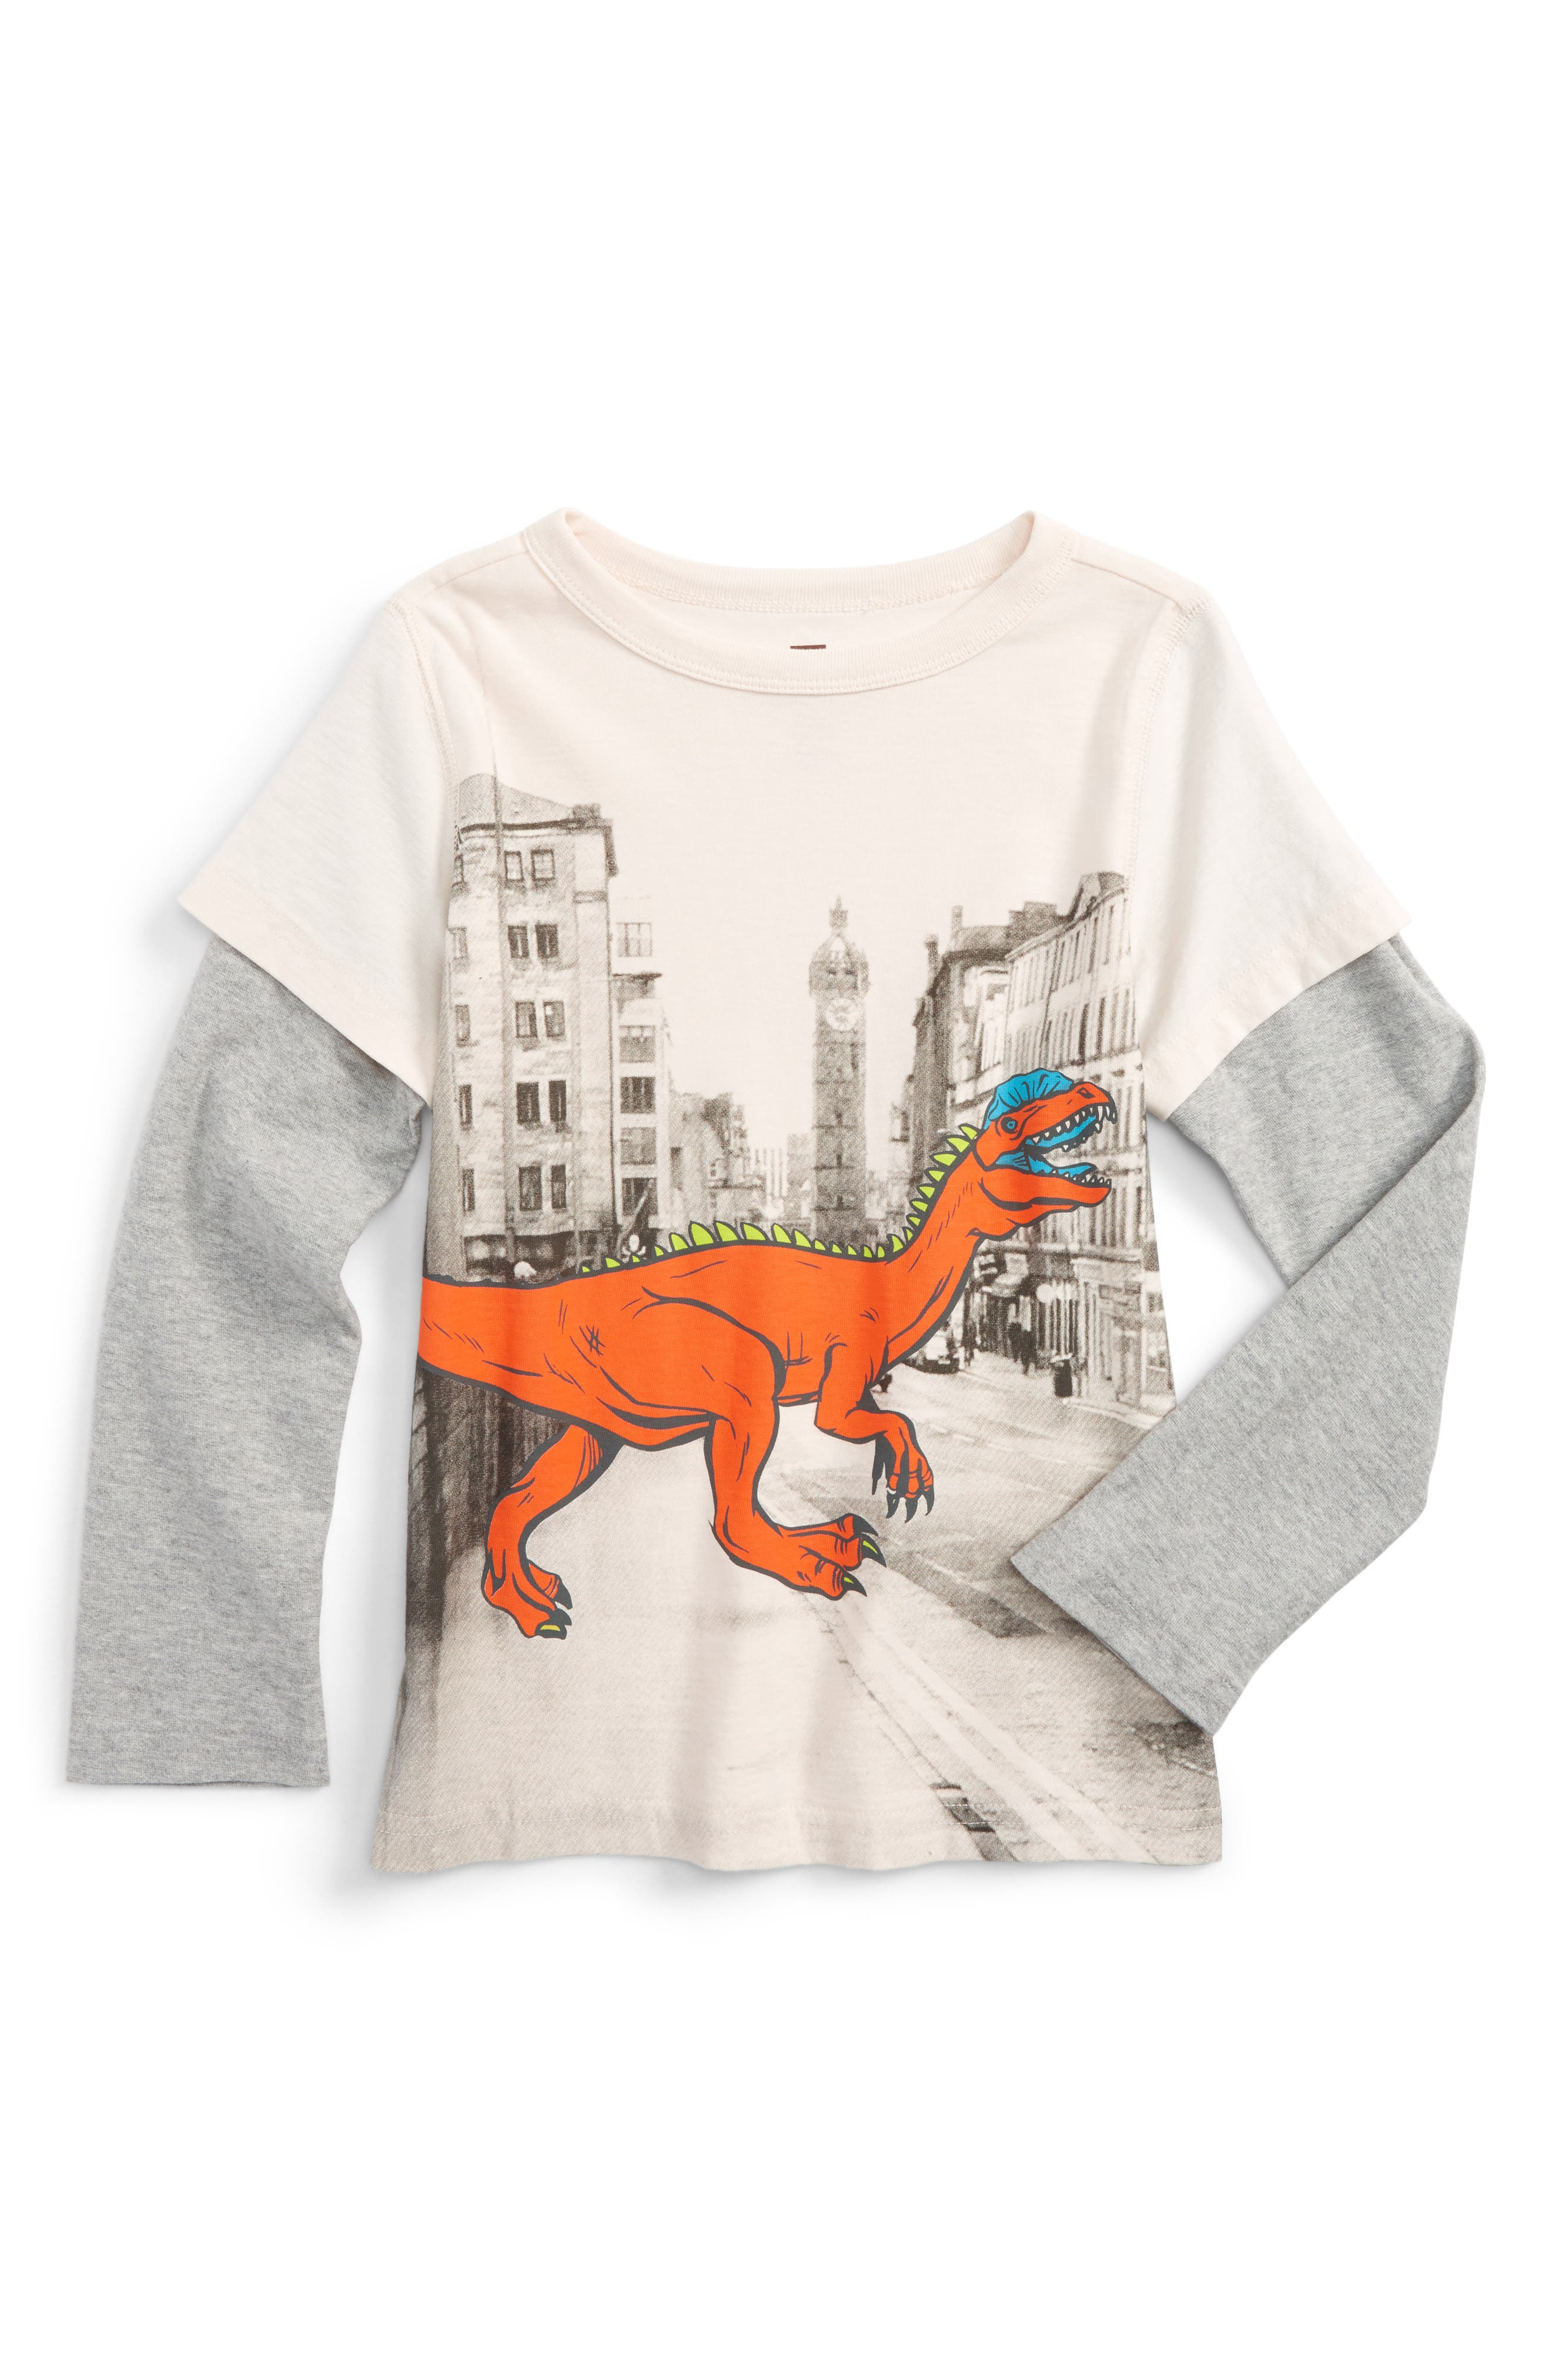 Tea Collection Saltmarket Graphic T-Shirt (Toddler Boys & Little Boys)